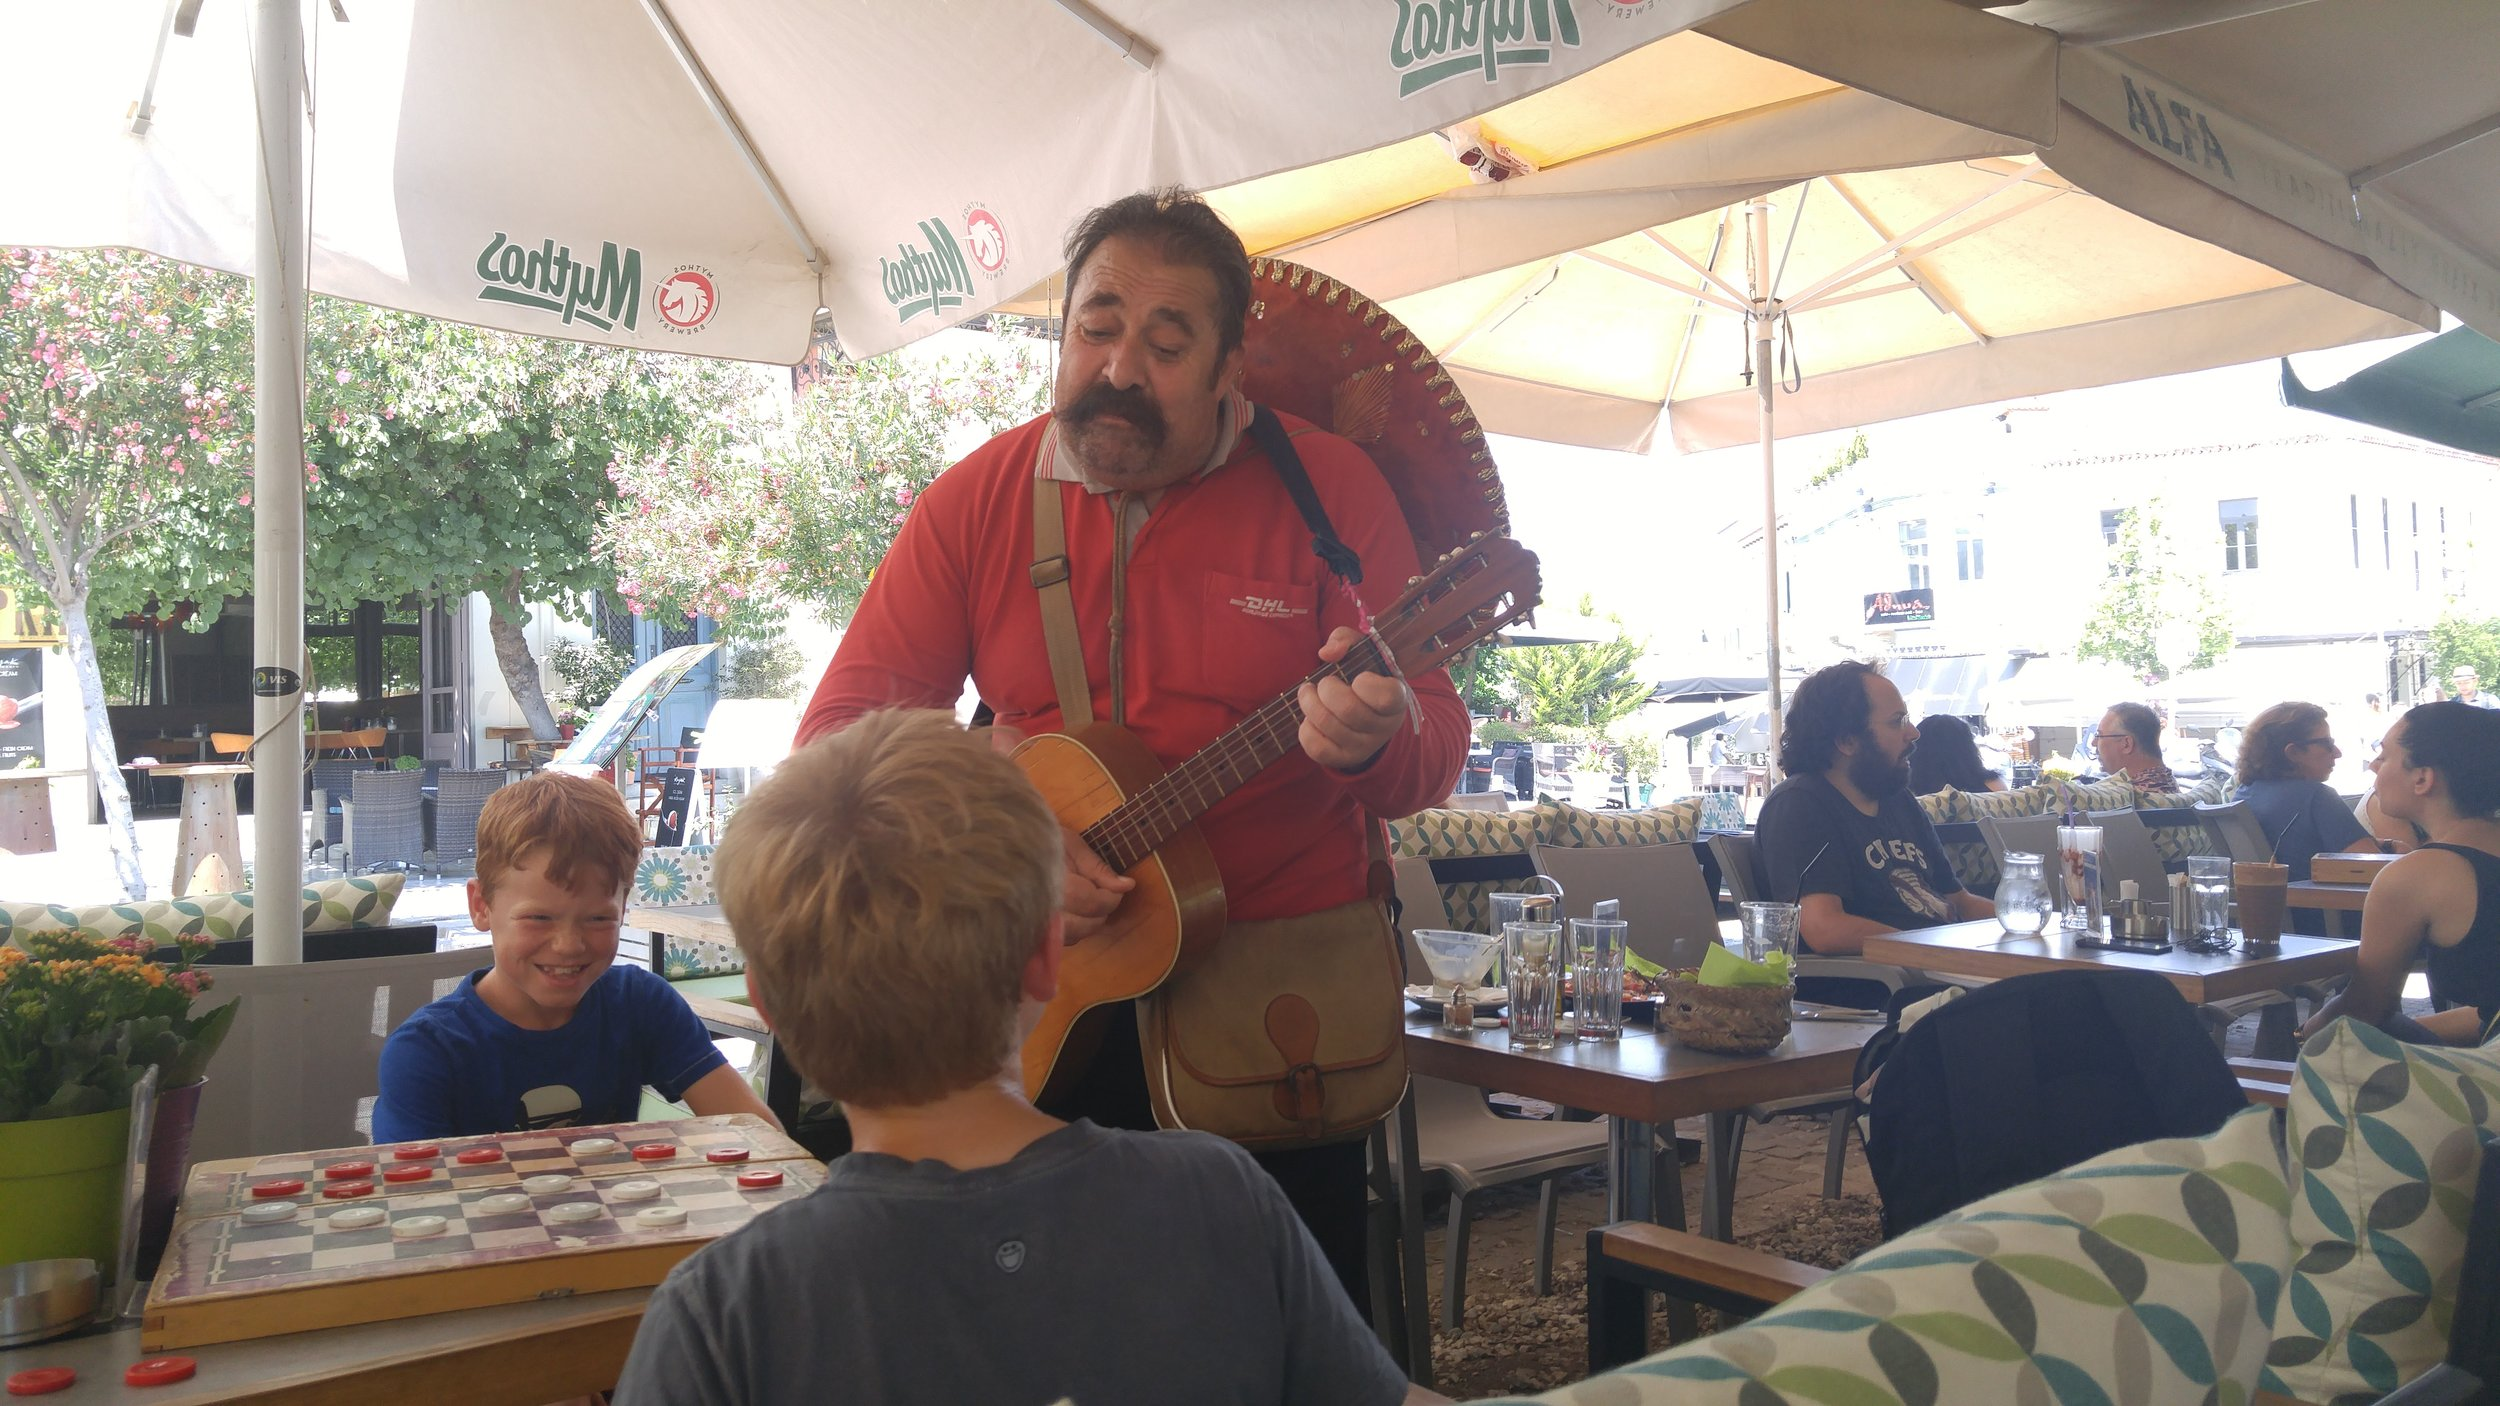 My nephews are serenaded by a street performer while playing checkers at a cafe in Thiseio.